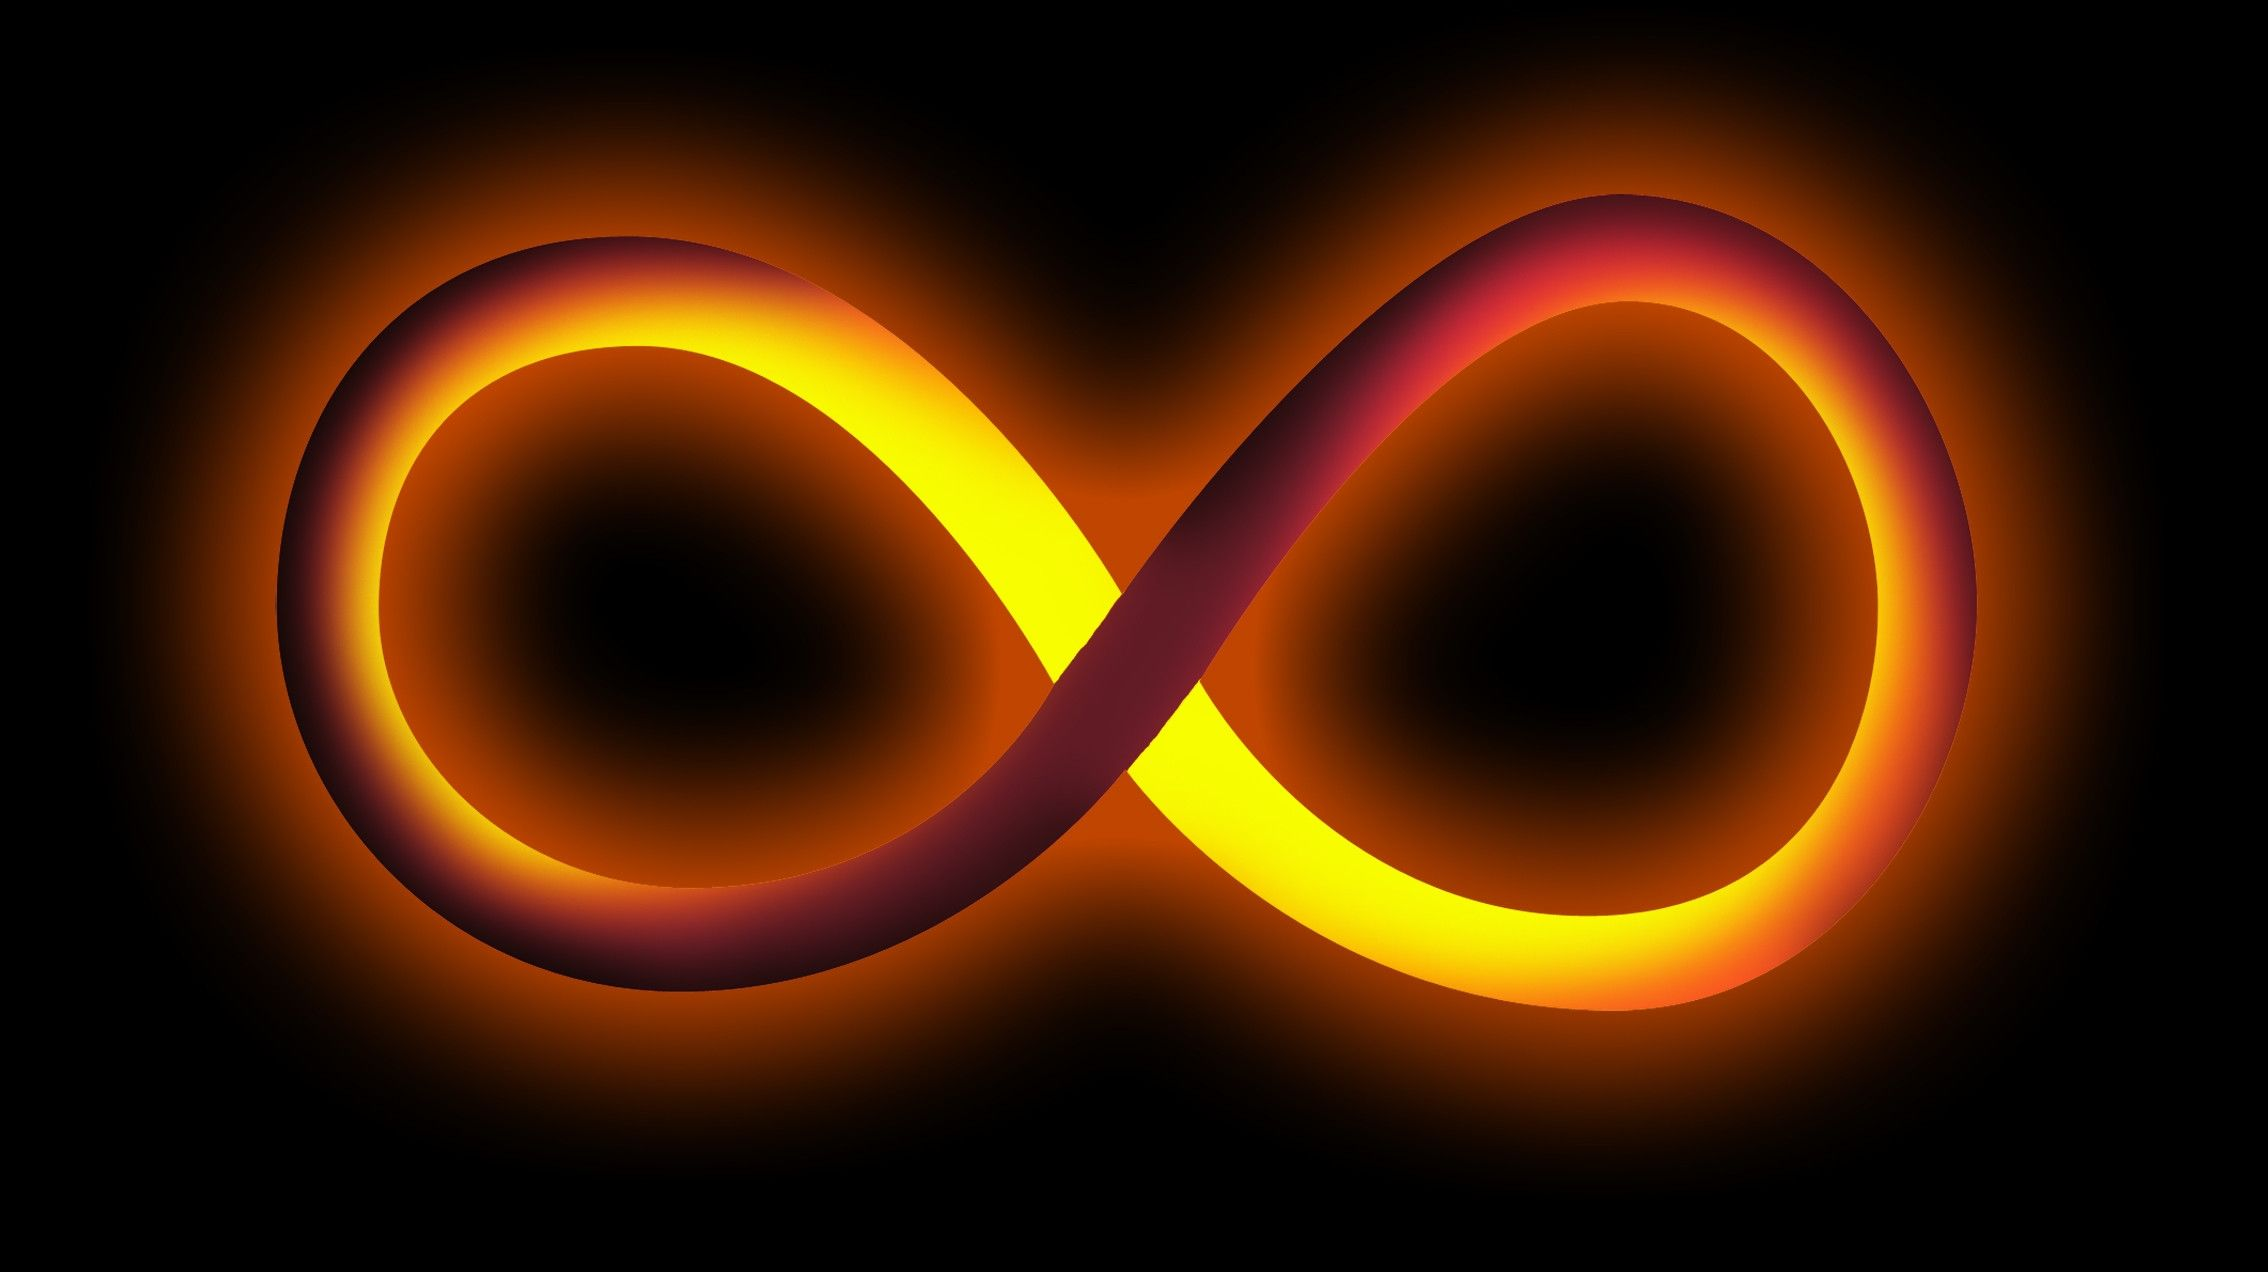 Infinity Symbol Wallpapers 73 Images Spiritual Photos Infinity Symbol Best Background Images